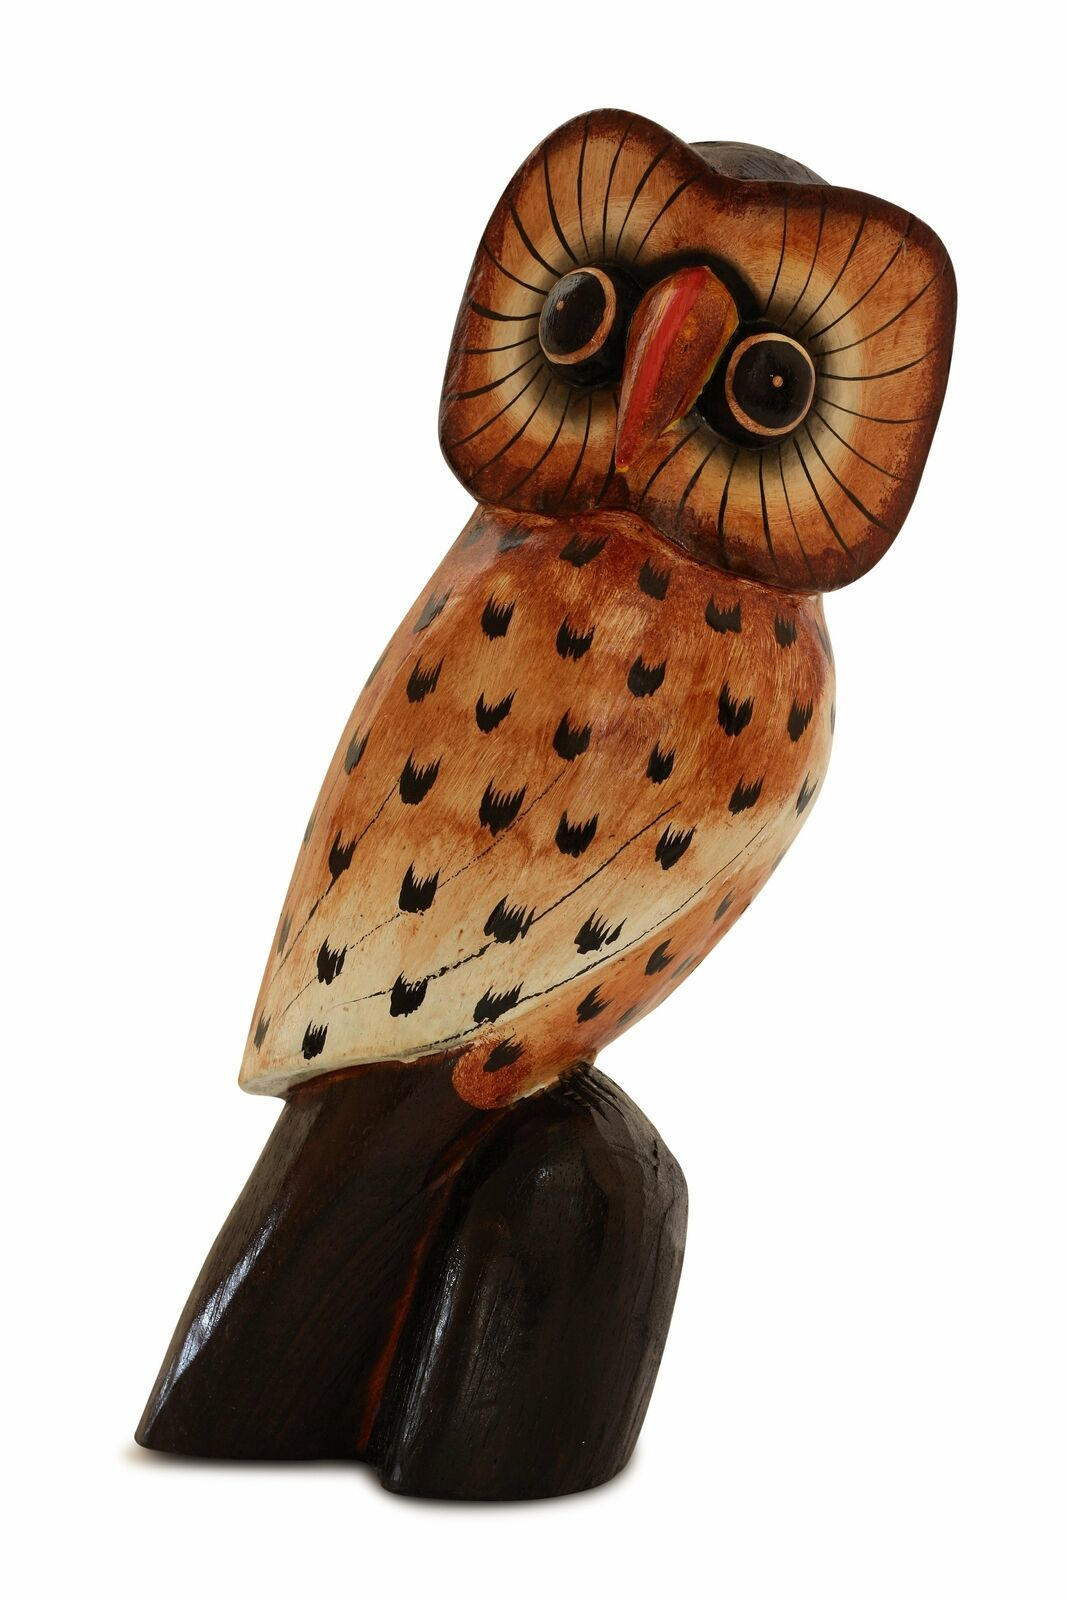 "Primary image for 12"" Wooden Owl Statue Figurine Art Home Decor Wood Sculpture Hand Carved Gift"